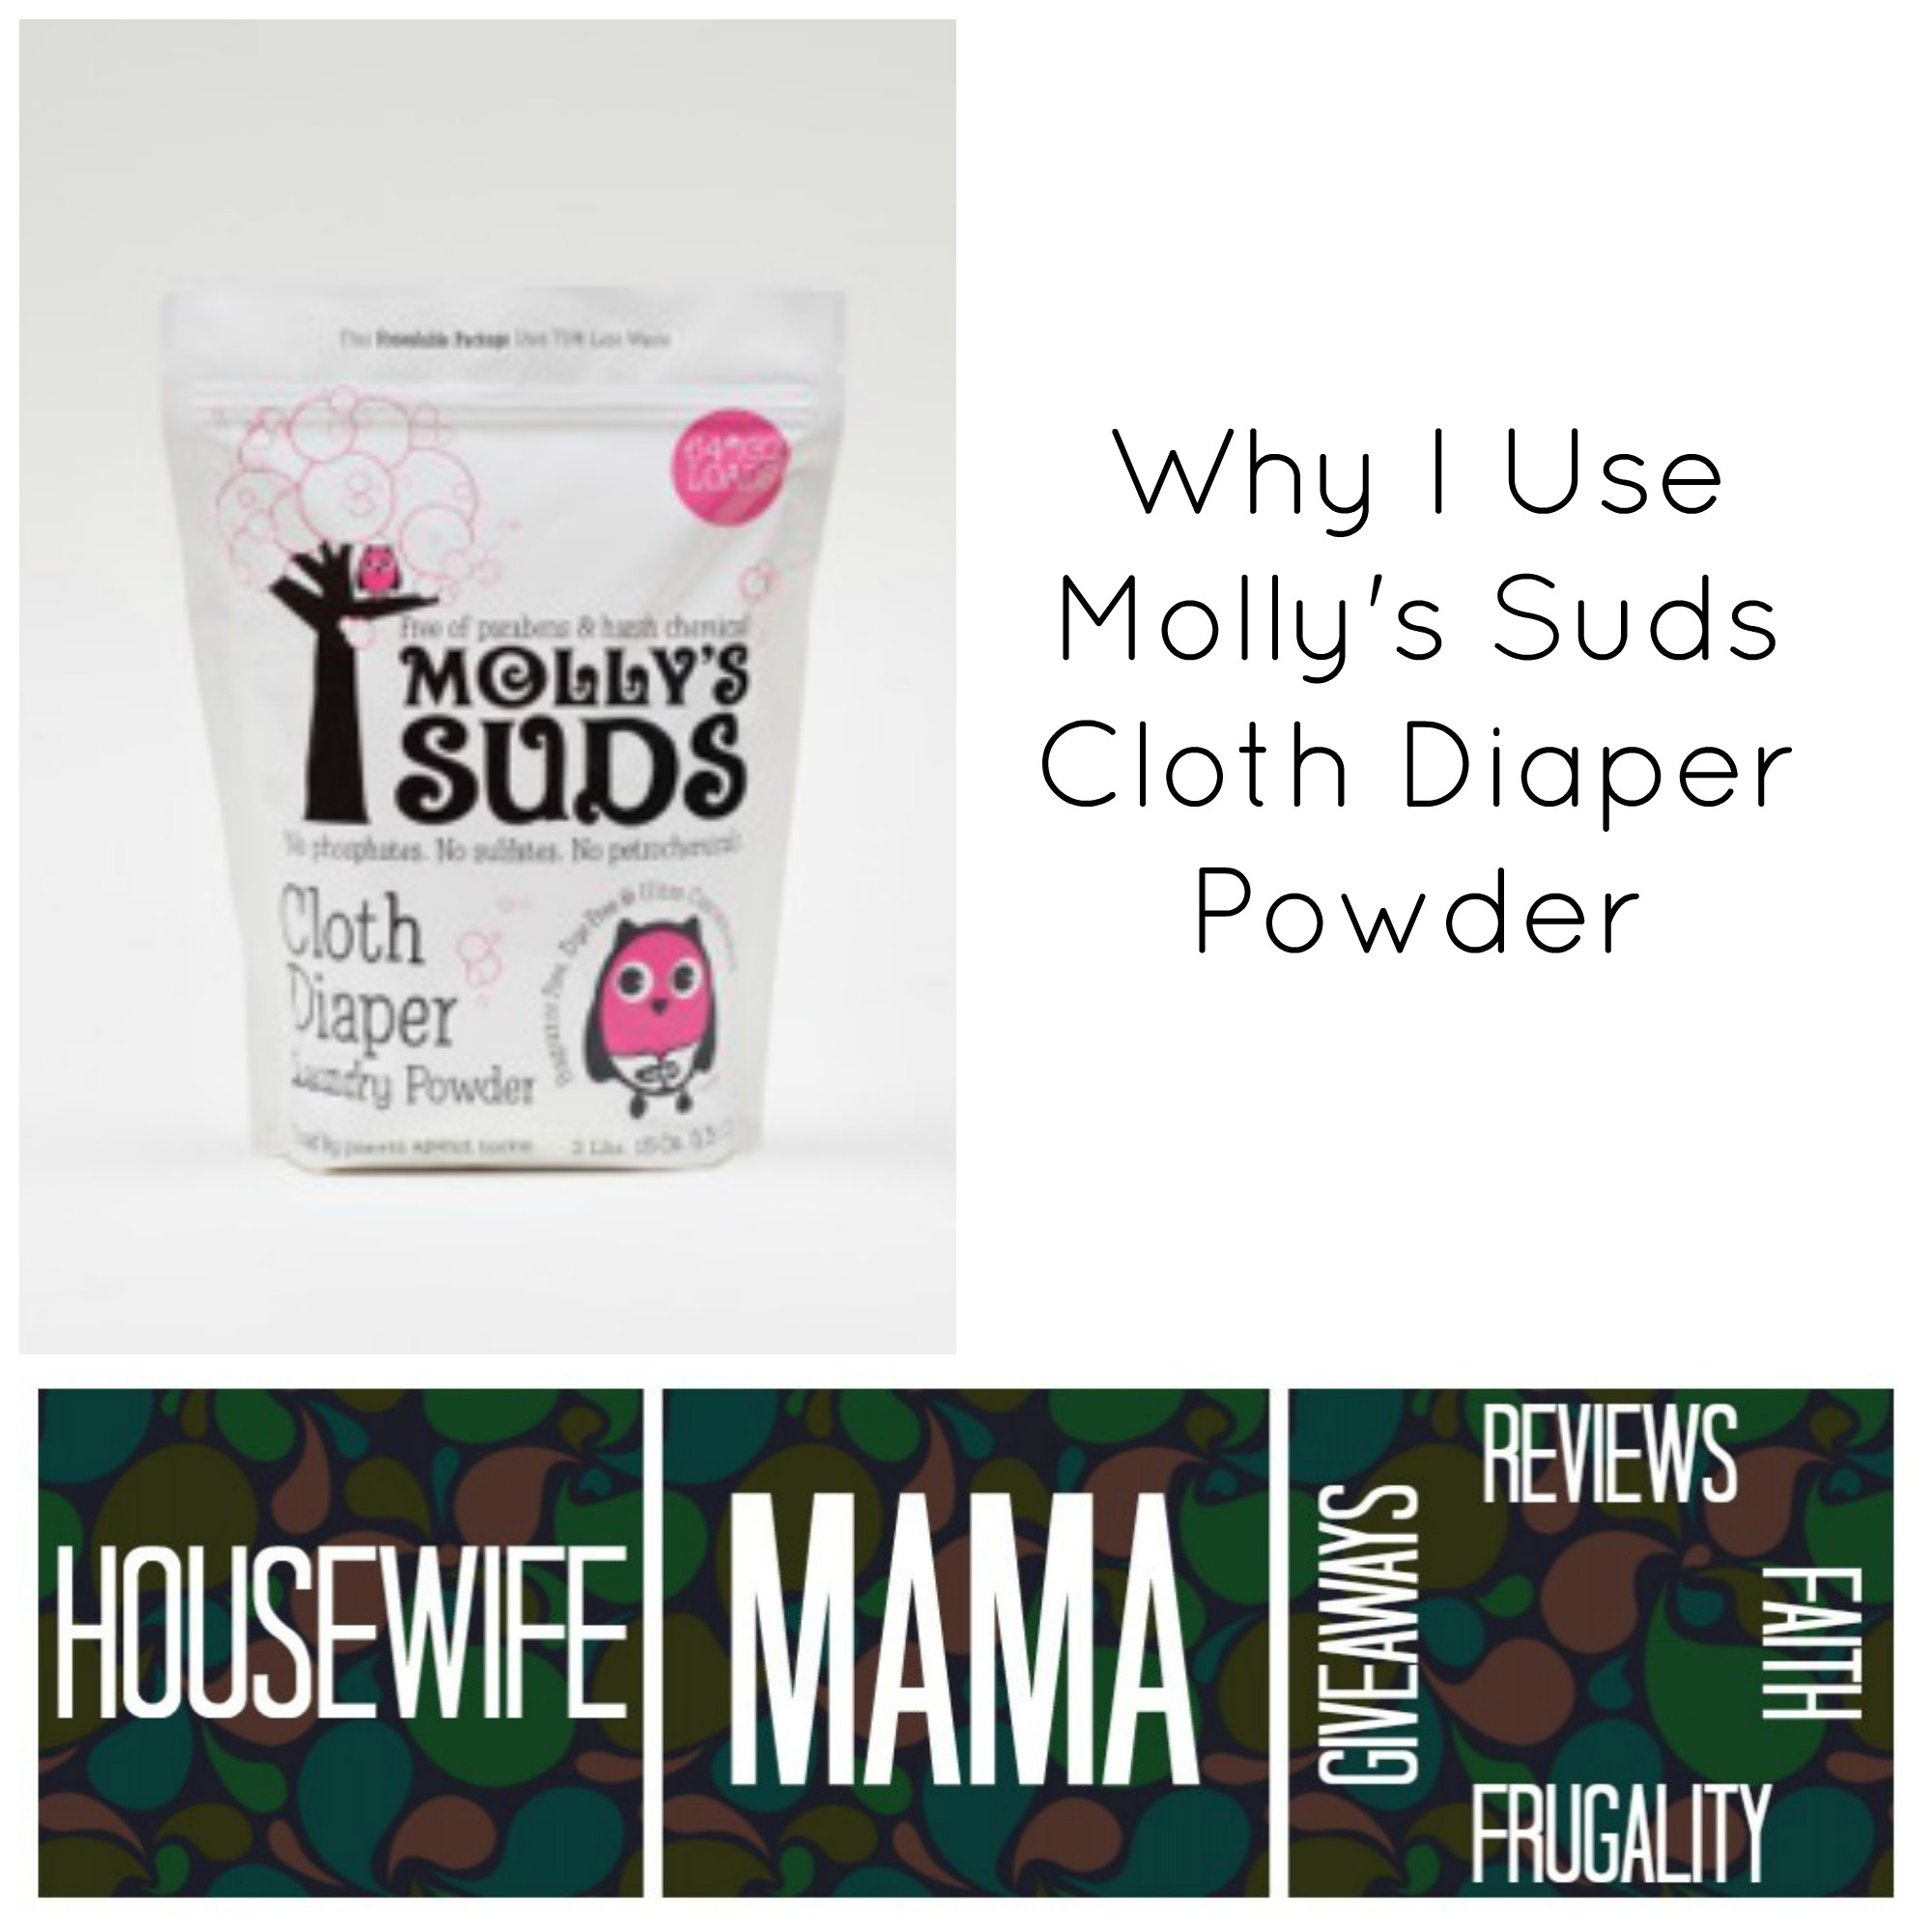 It's free of harsh chemicals, it cleans my diapers dependably and more... (plus a giveaway now through 2/7)